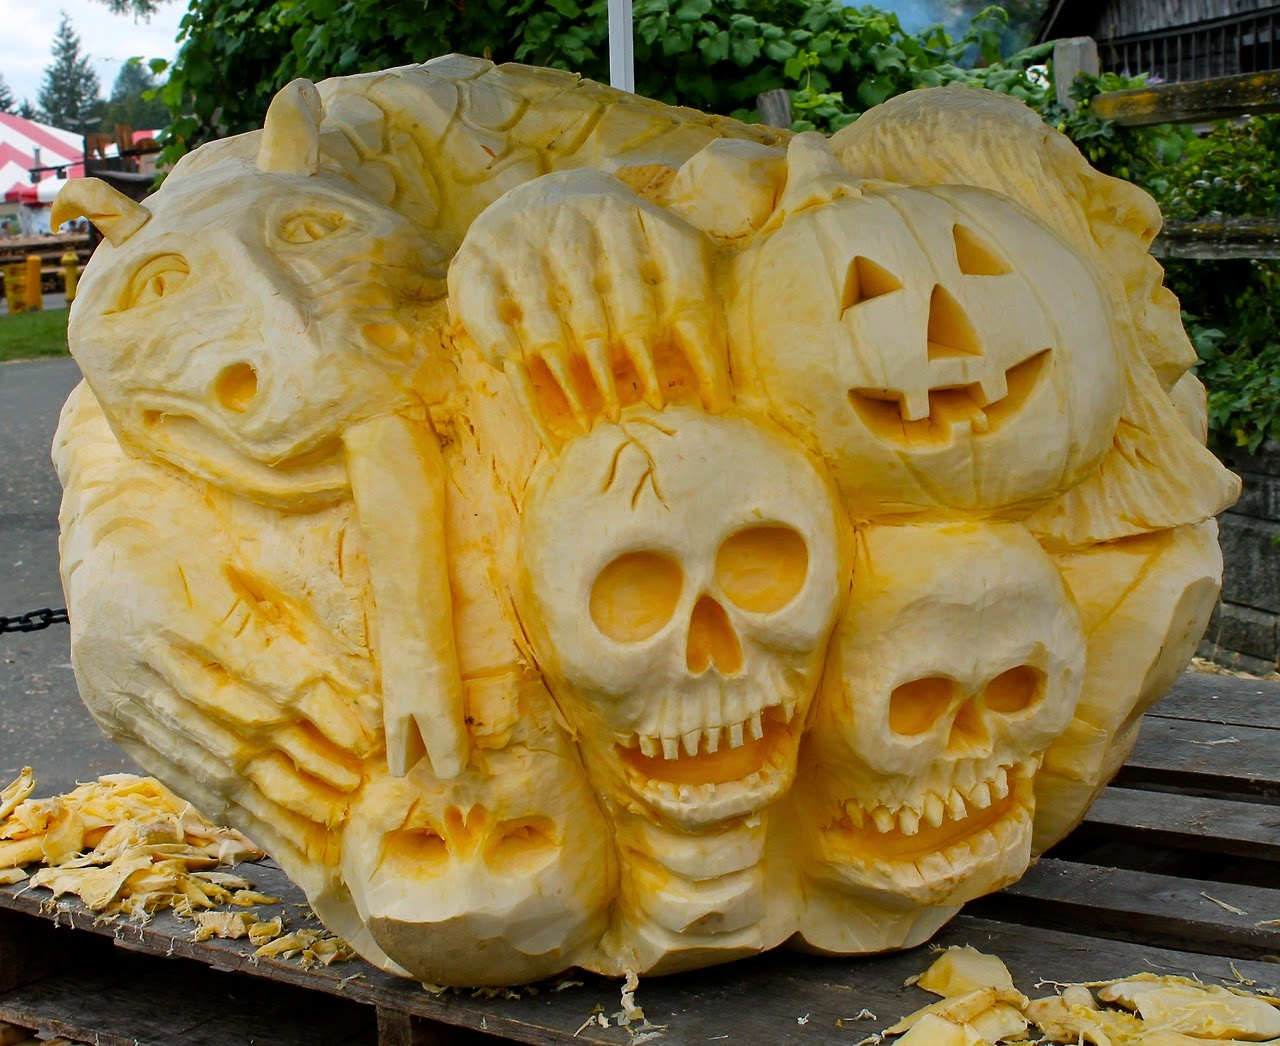 Scary Intricate Pumpkin Carving